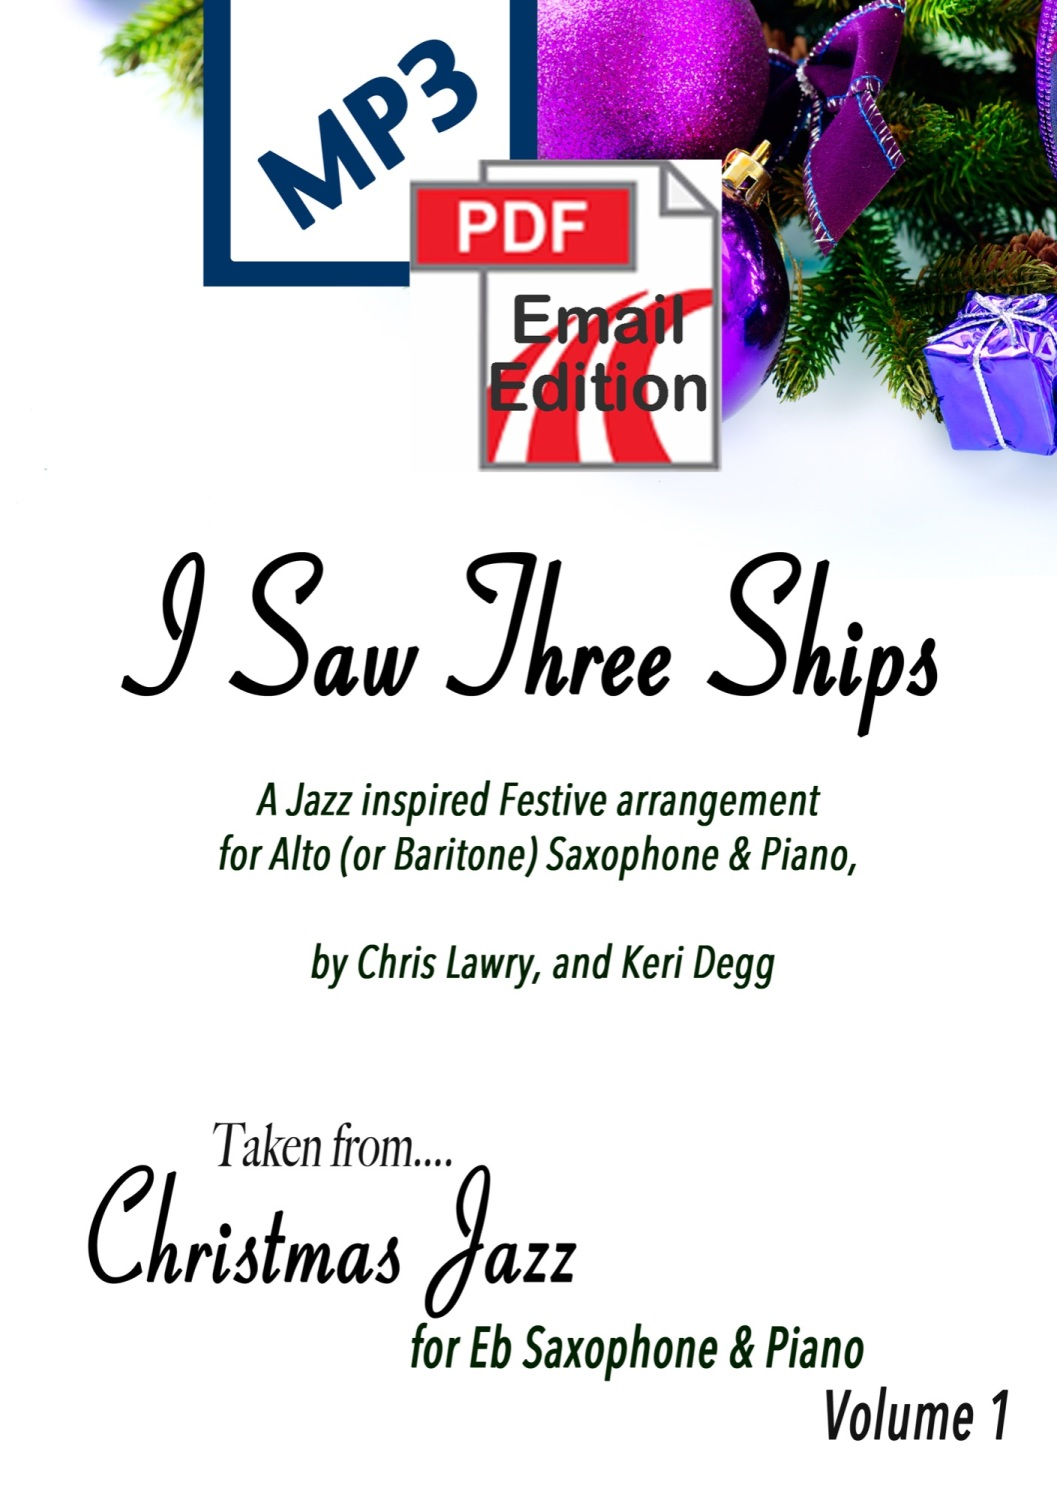 I Saw Three Ships. Christmas Jazz inspired arrangement Alto (or Baritone) S